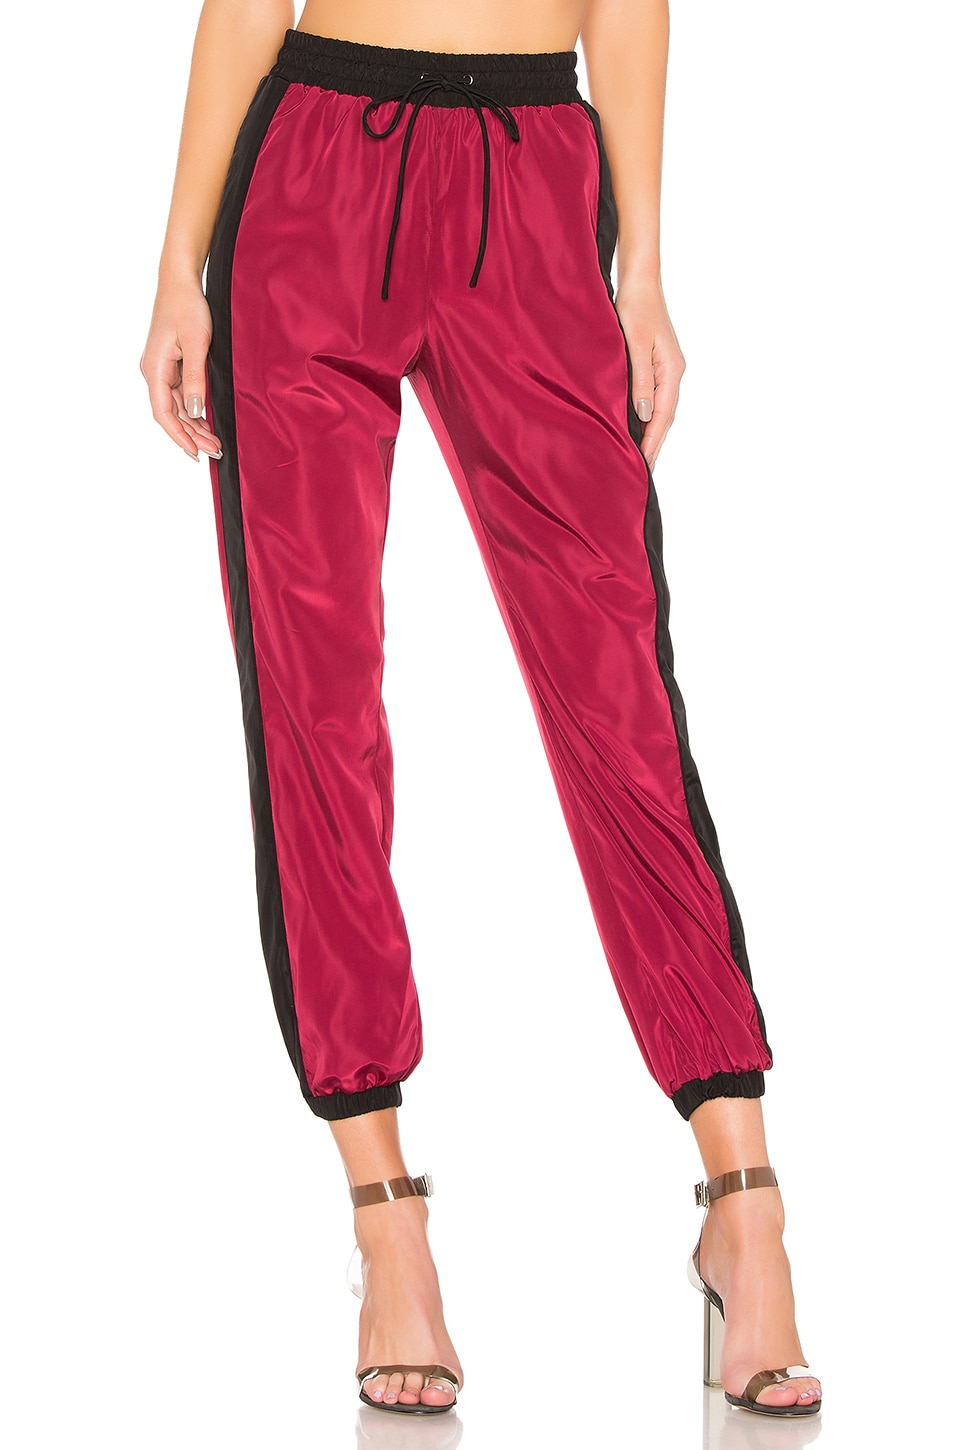 LPA Gino Pant in Burgundy & Black